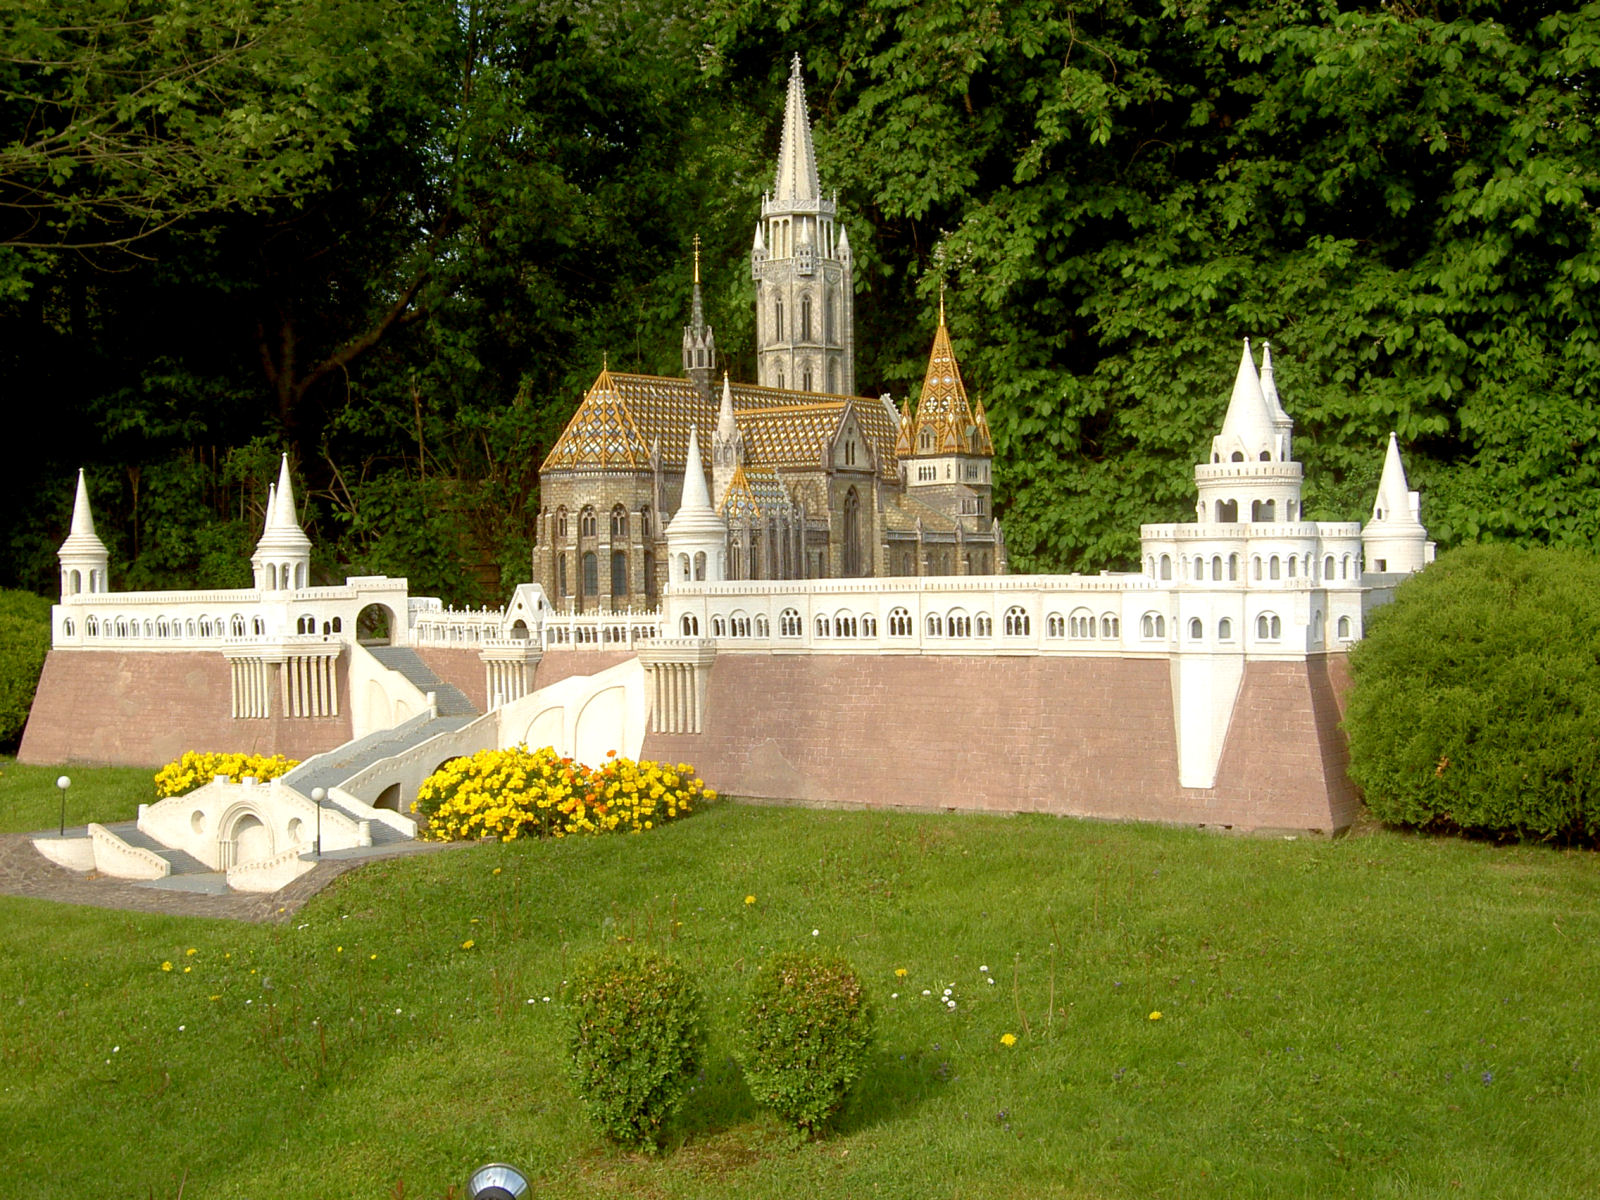 Model of the Budapest's Fisherman's Bastion at Minimundus, Klagenfurt, Austria